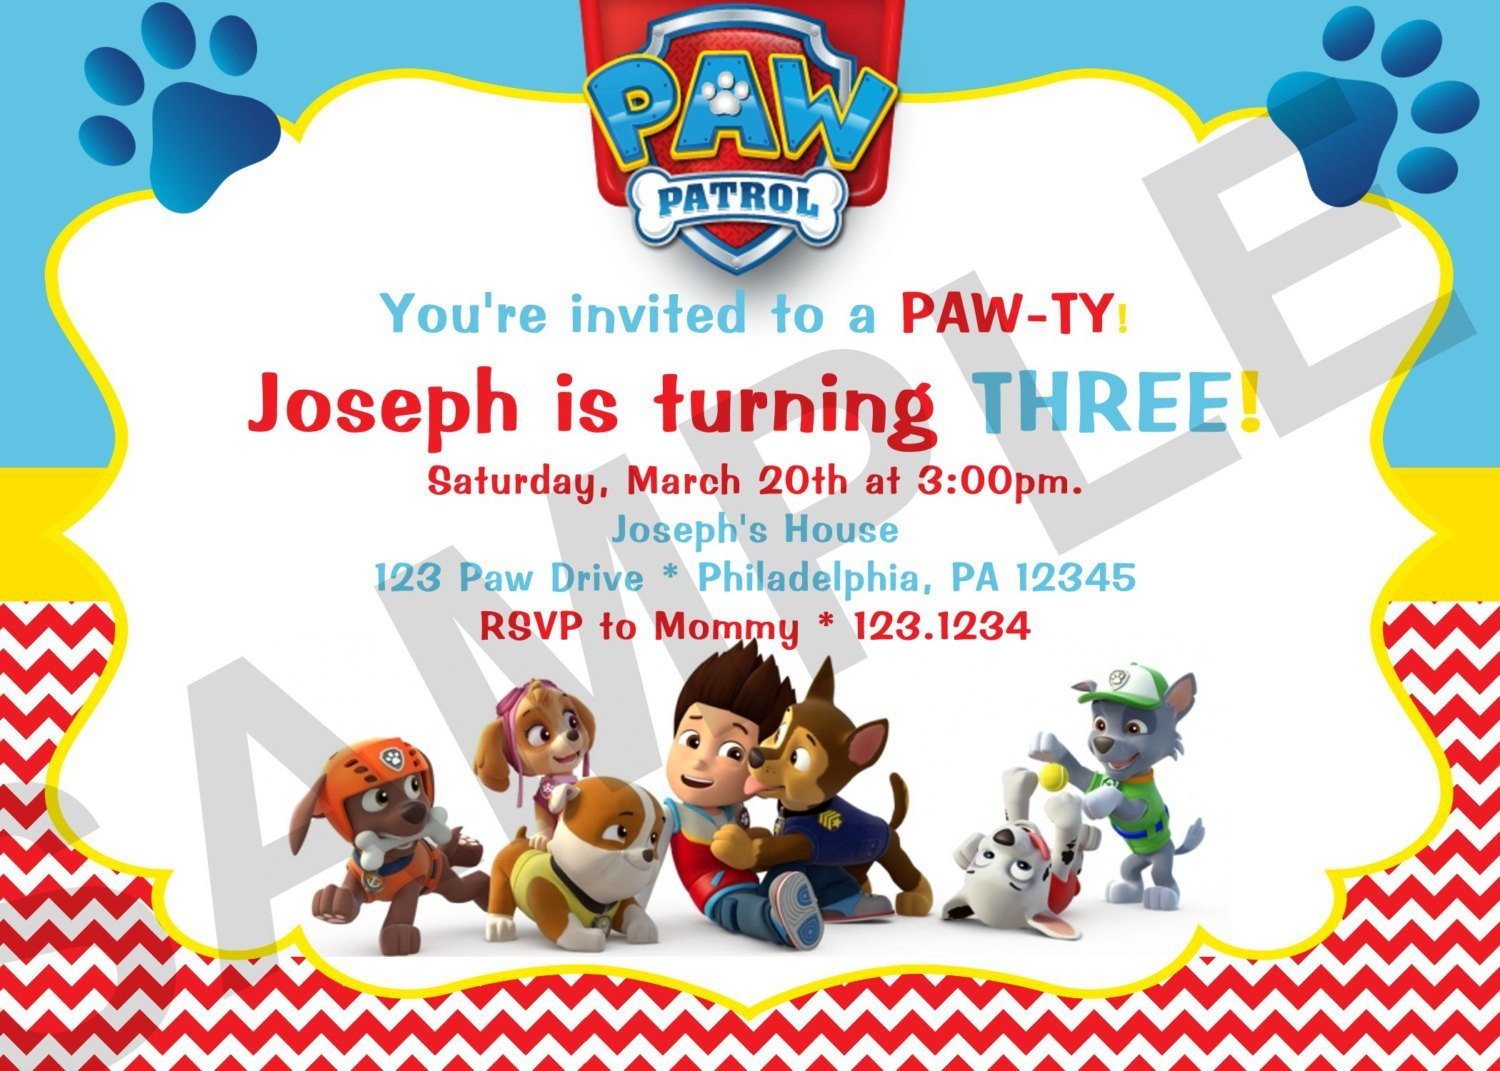 Free Paw Patrol Invitation Template Paw Patrol Birthday Invitations Paw Patrol Birthday